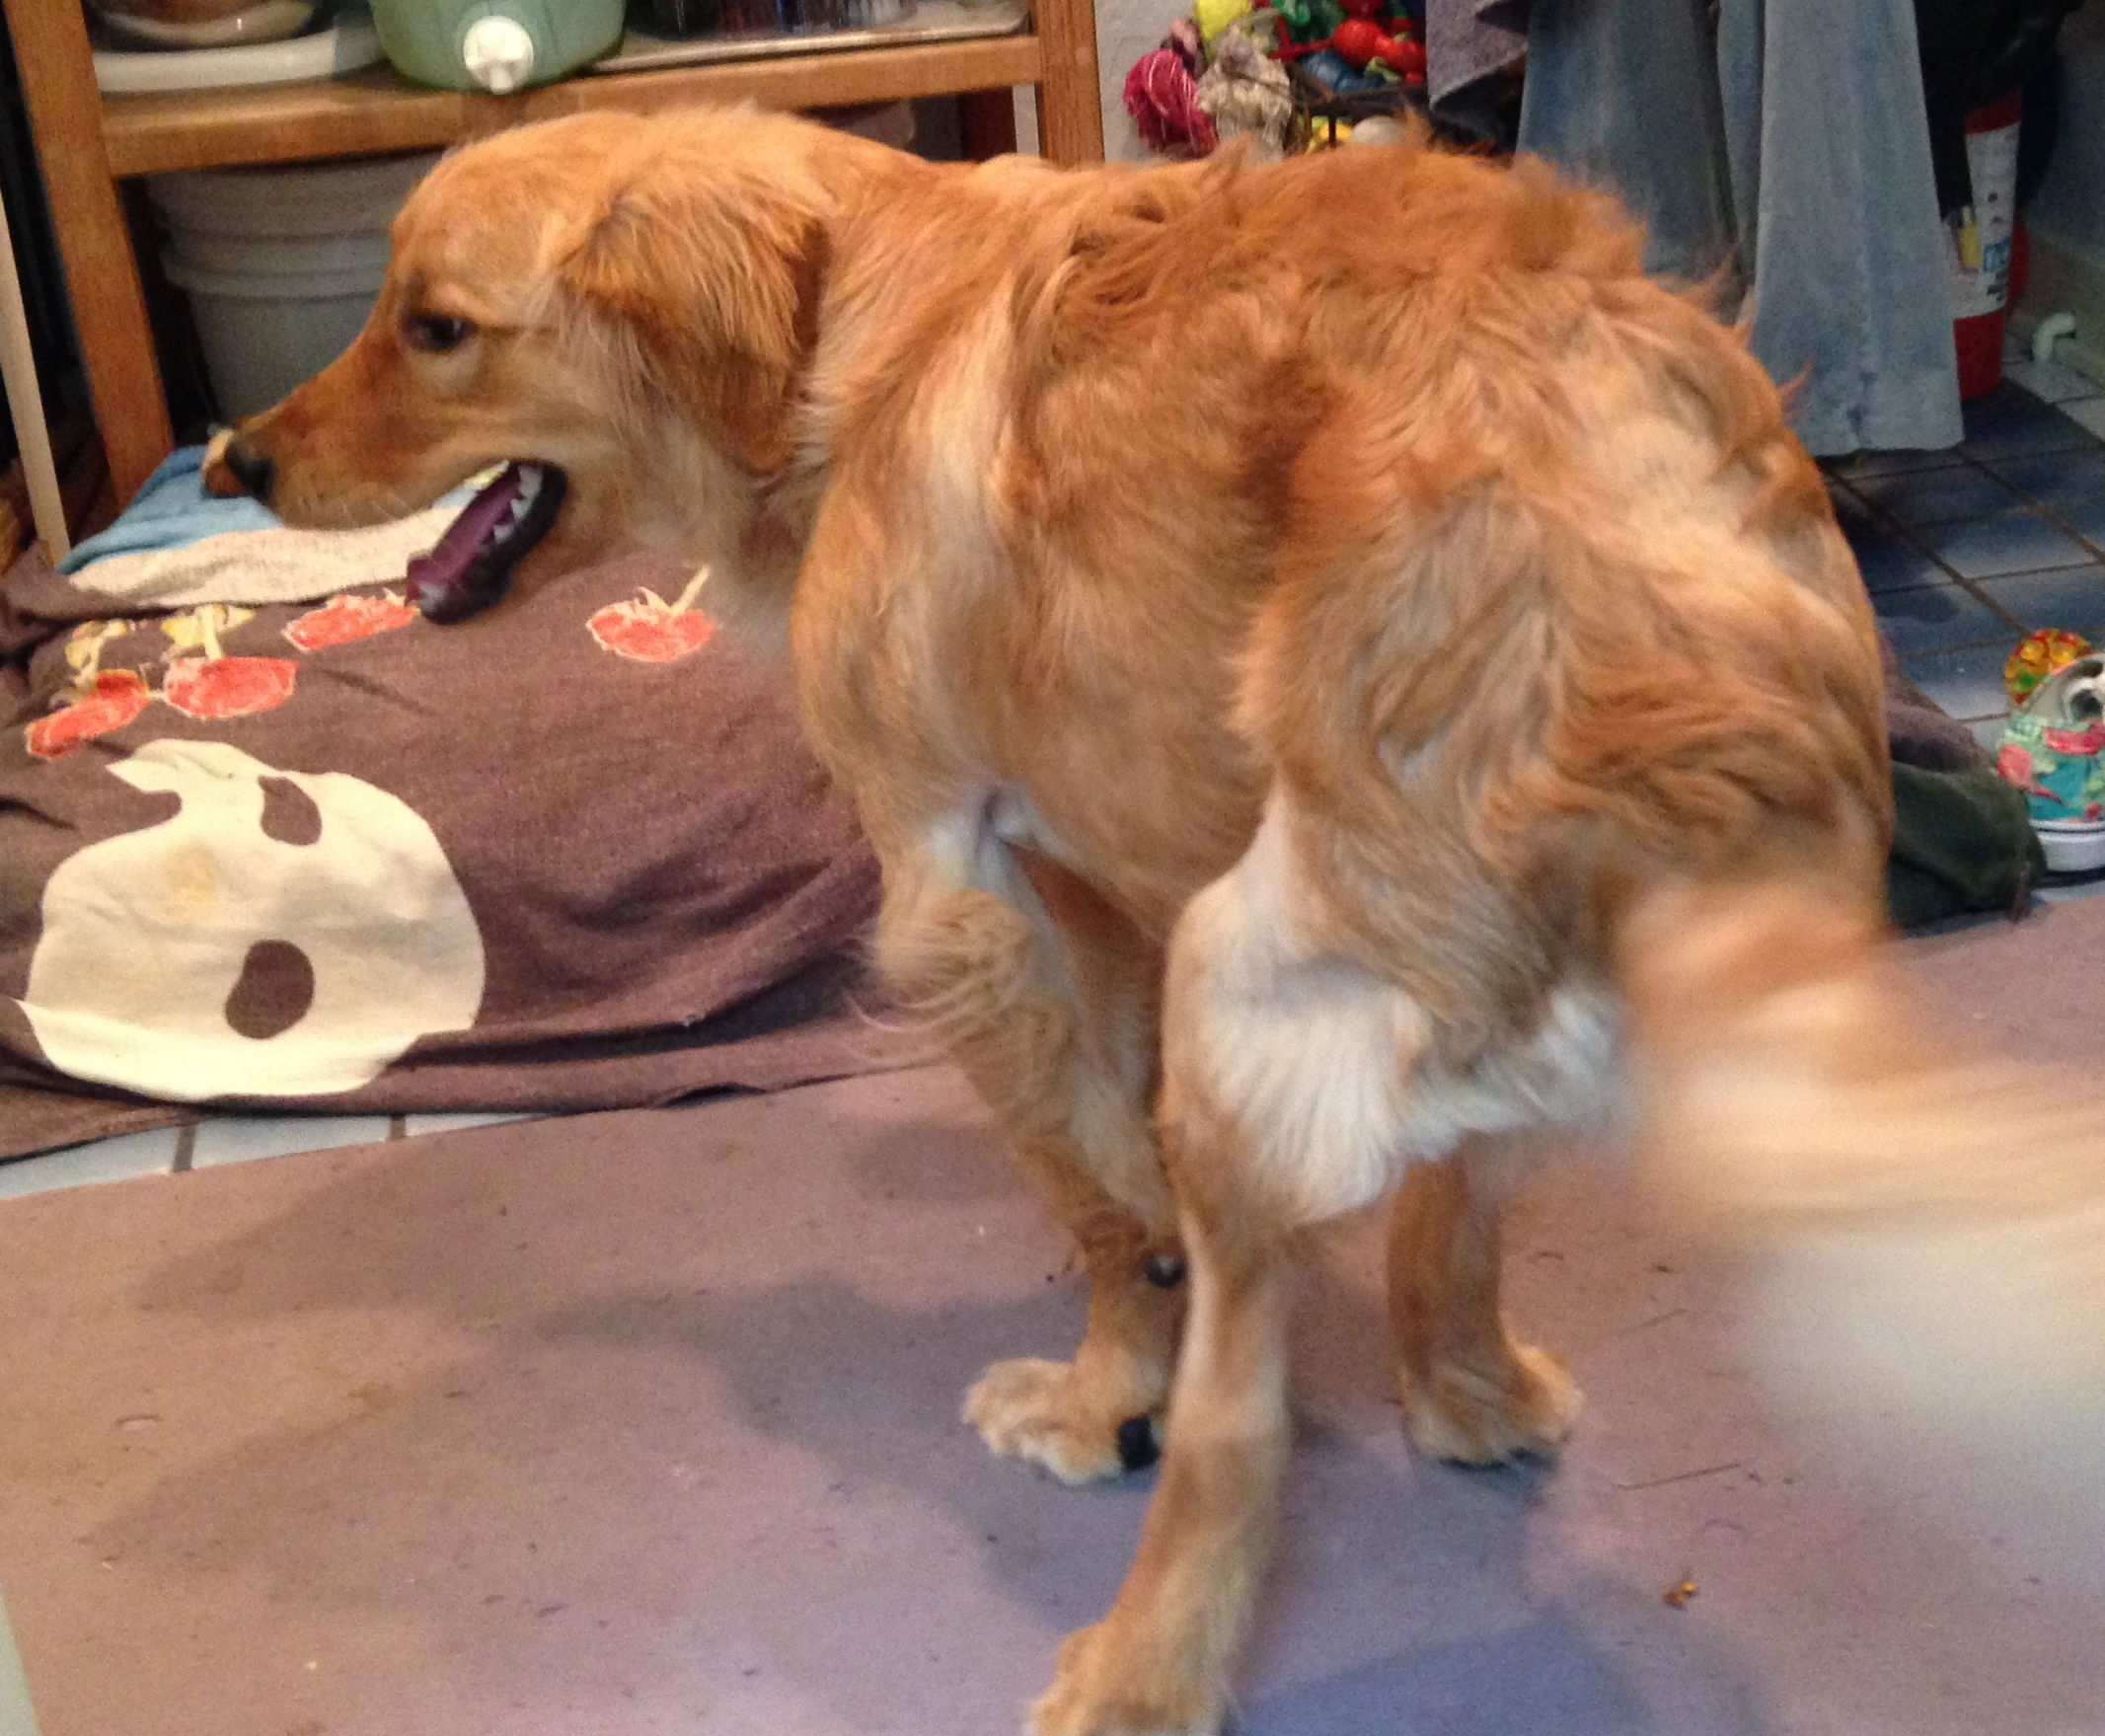 Canine physical therapy - And On The 70th Day He Walked Backwards